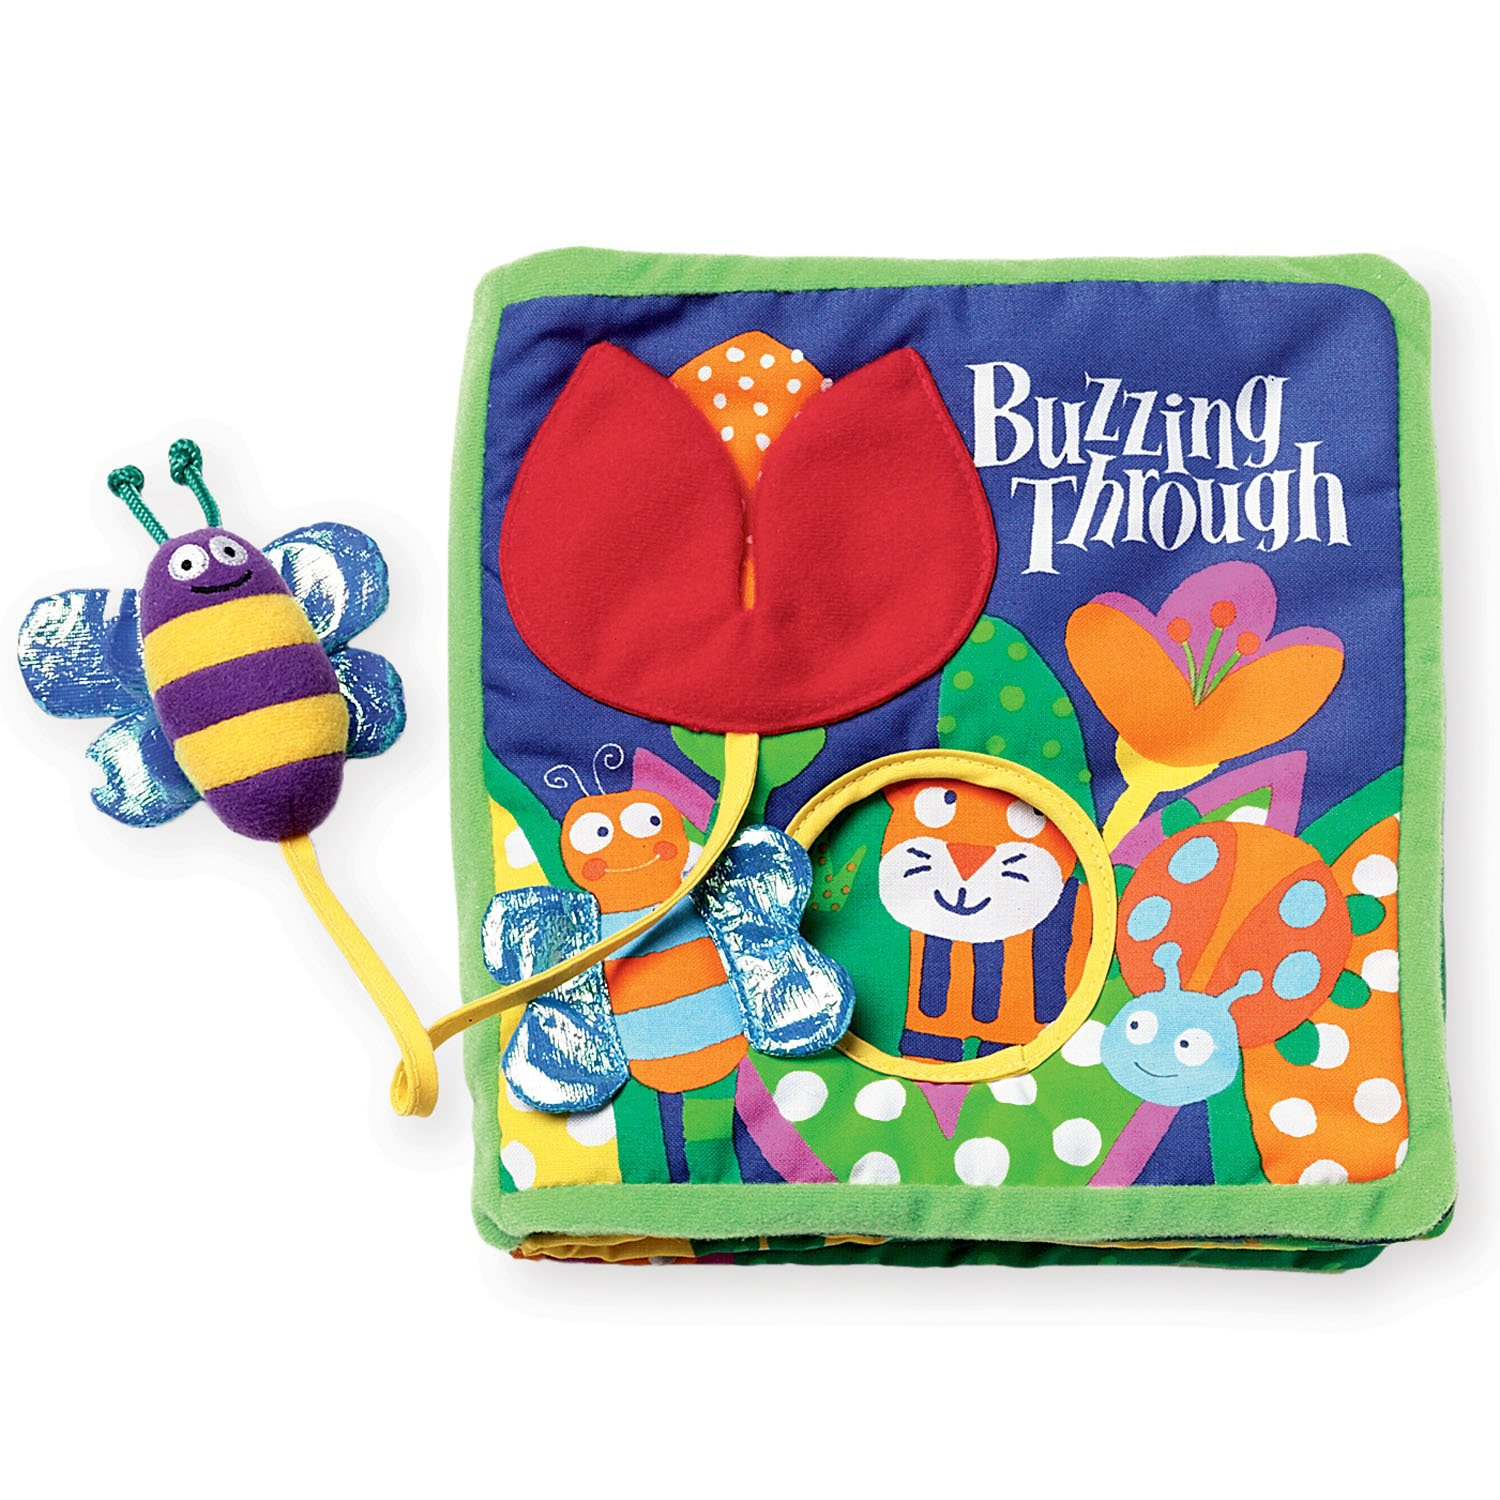 Manhattan Toy Soft Activity Book With Tethered Toy, Buzzing Through by Manhattan Toy